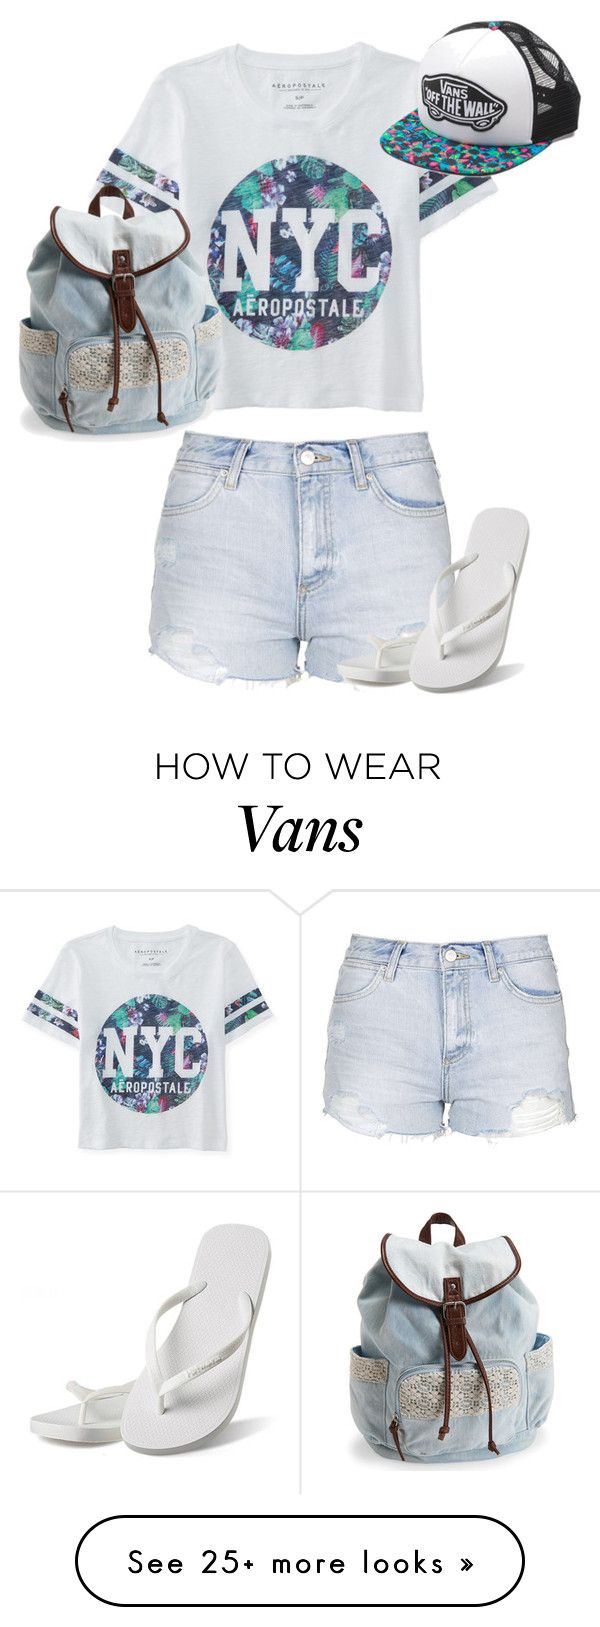 """Go to the beach"" by cutiecat14 on Polyvore featuring Aéropostale, Topshop, Hotmarzz, Vans, women's clothing, women's fashion, women, female, woman and misses"